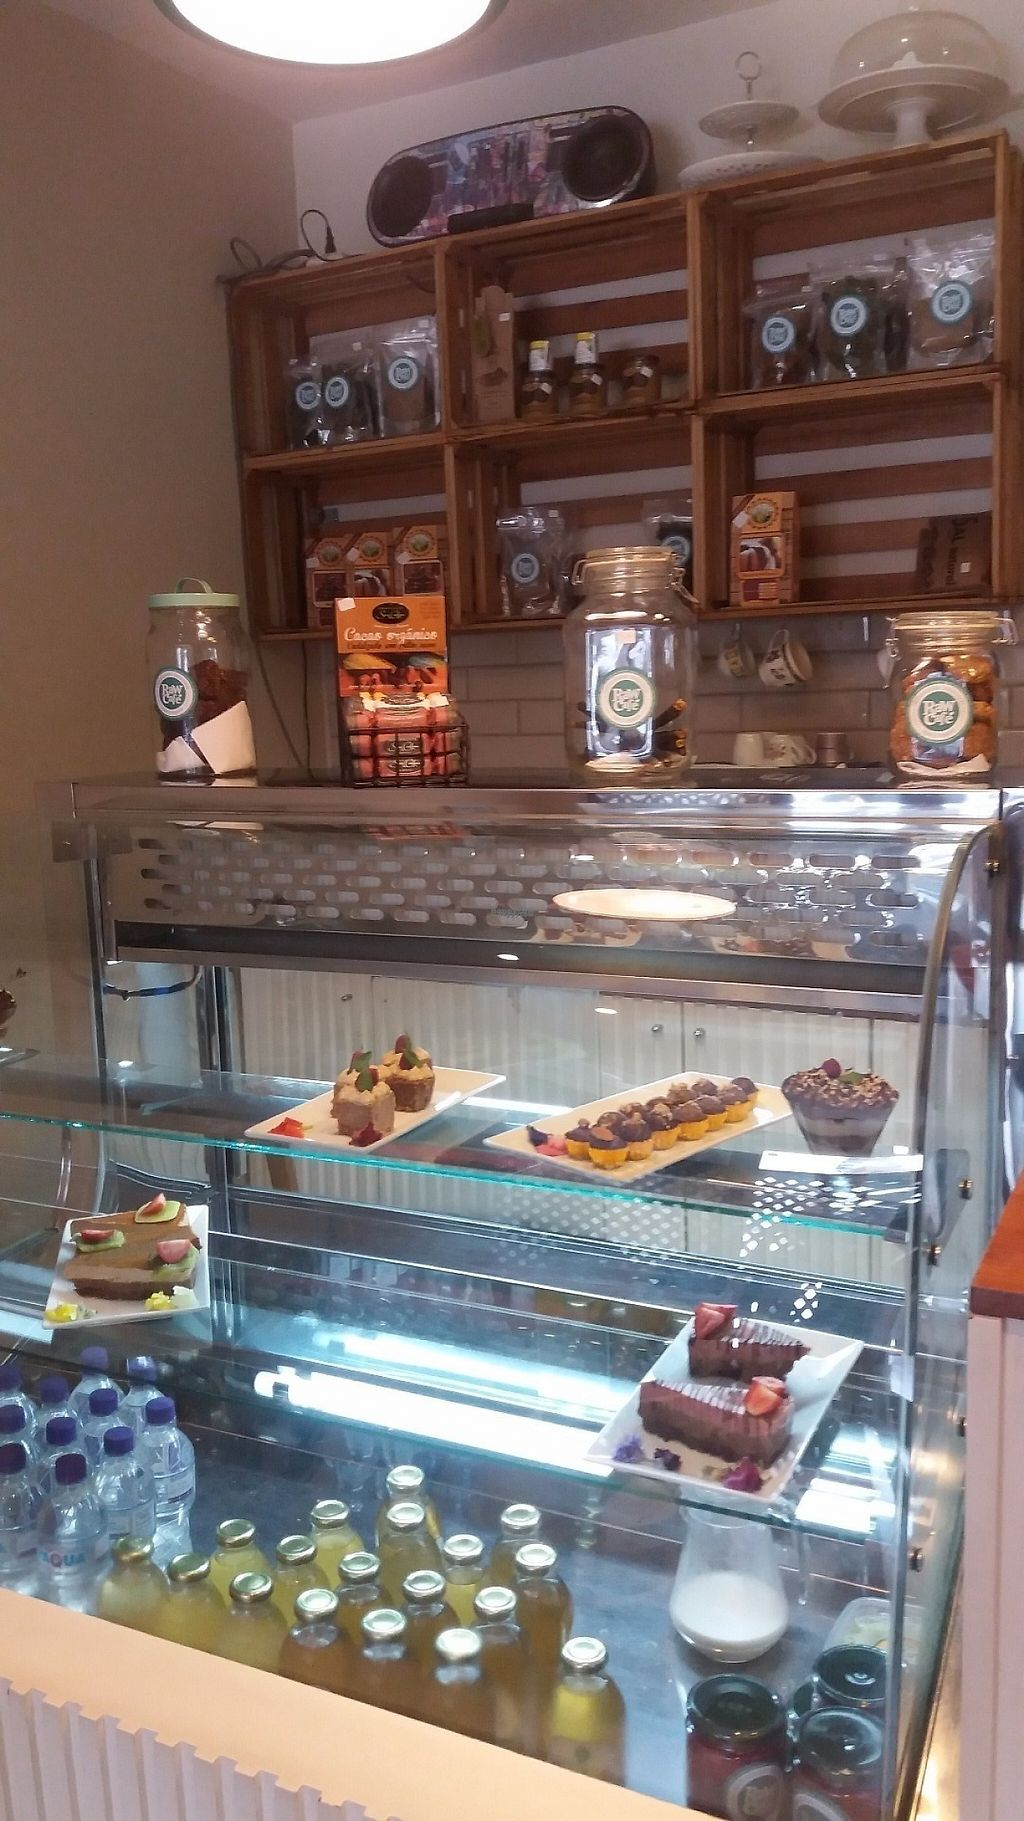 "Photo of Raw Cafe - Independencia  by <a href=""/members/profile/Ismarix"">Ismarix</a> <br/>Dessert bar <br/> December 20, 2016  - <a href='/contact/abuse/image/41640/203229'>Report</a>"